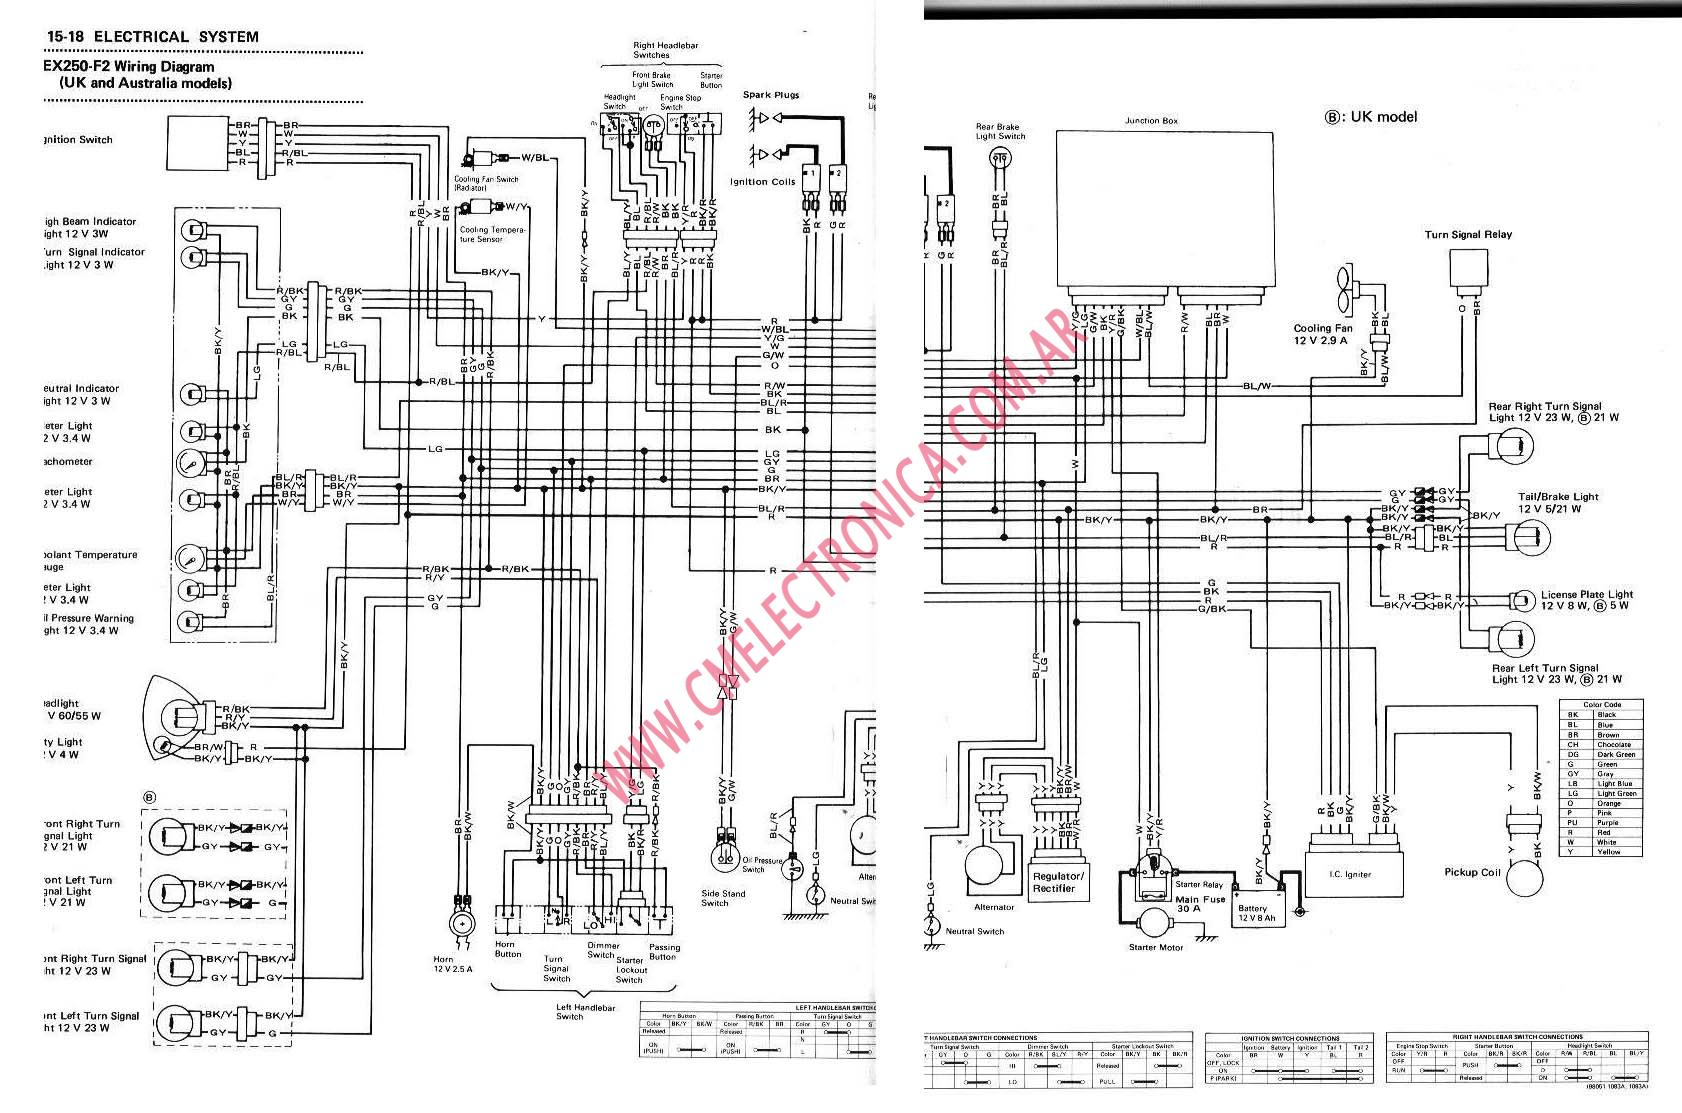 2004 Ford Explorer Wiring Diagram as well Jeep Cherokee Xj Steering Parts 84 01 Quadratec With 1996 Jeep Cherokee Parts Diagram also Mercury Tracer 2 0 2001 Specs And Images besides Jaguar Xj8 Fuse Box Diagram likewise Kj Dana 30 Front. on 1998 jeep cherokee wiring diagram